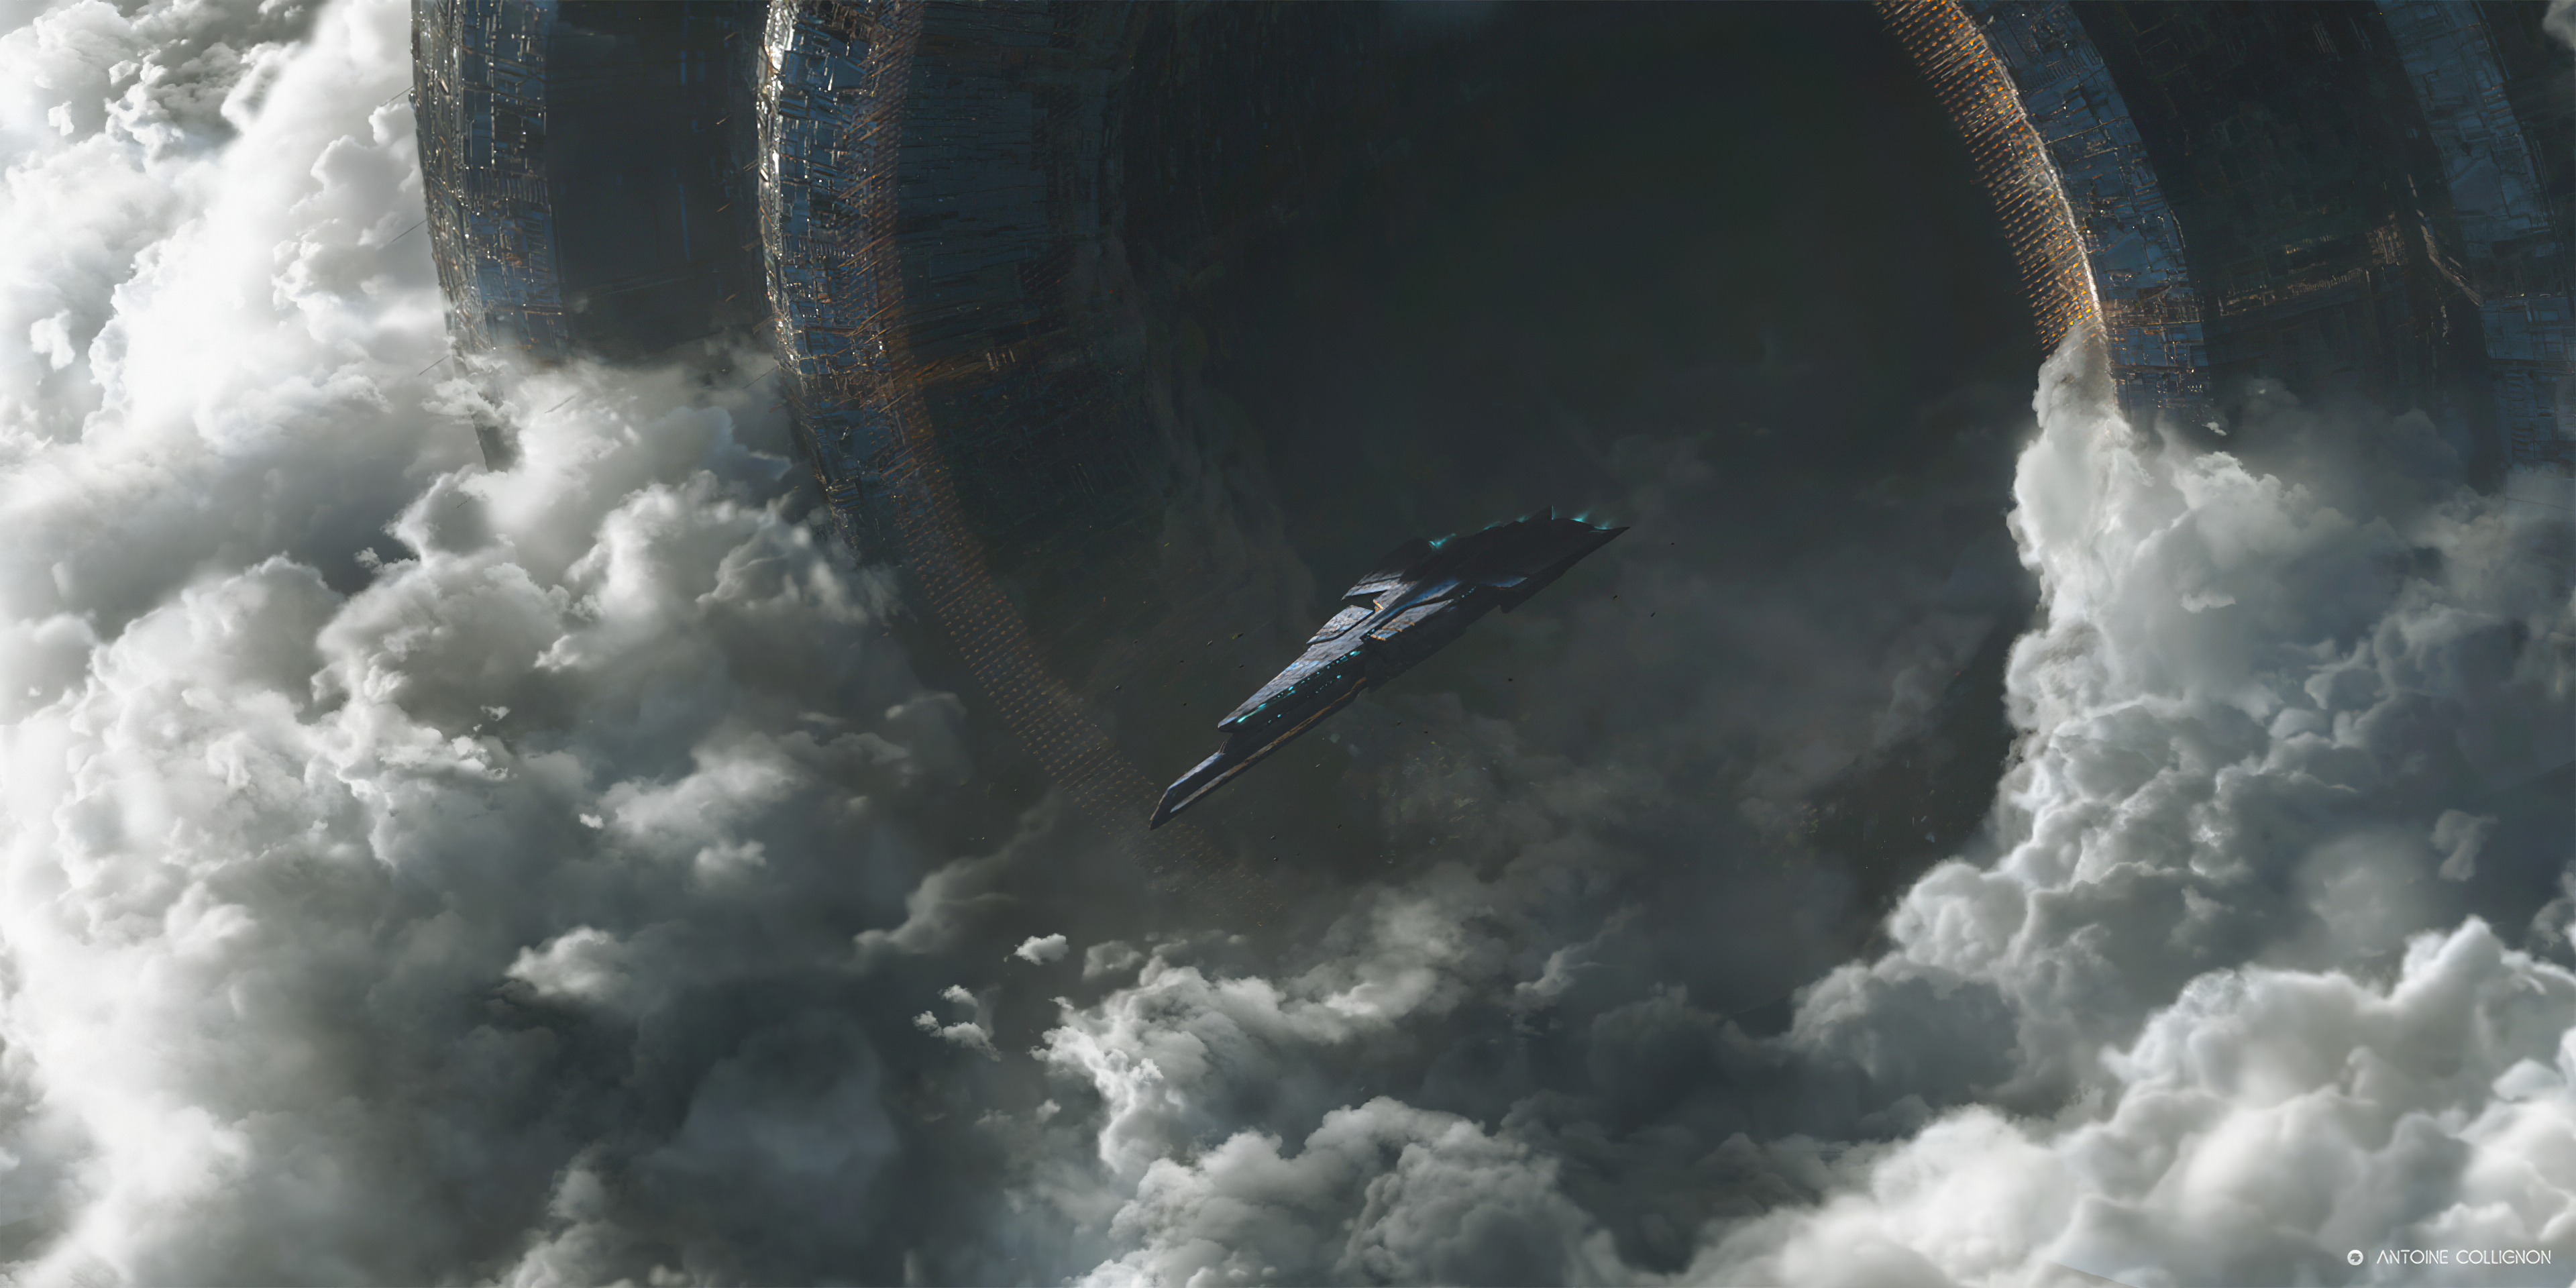 General 3840x1920 Antoine Collignon spaceship clouds debris gates